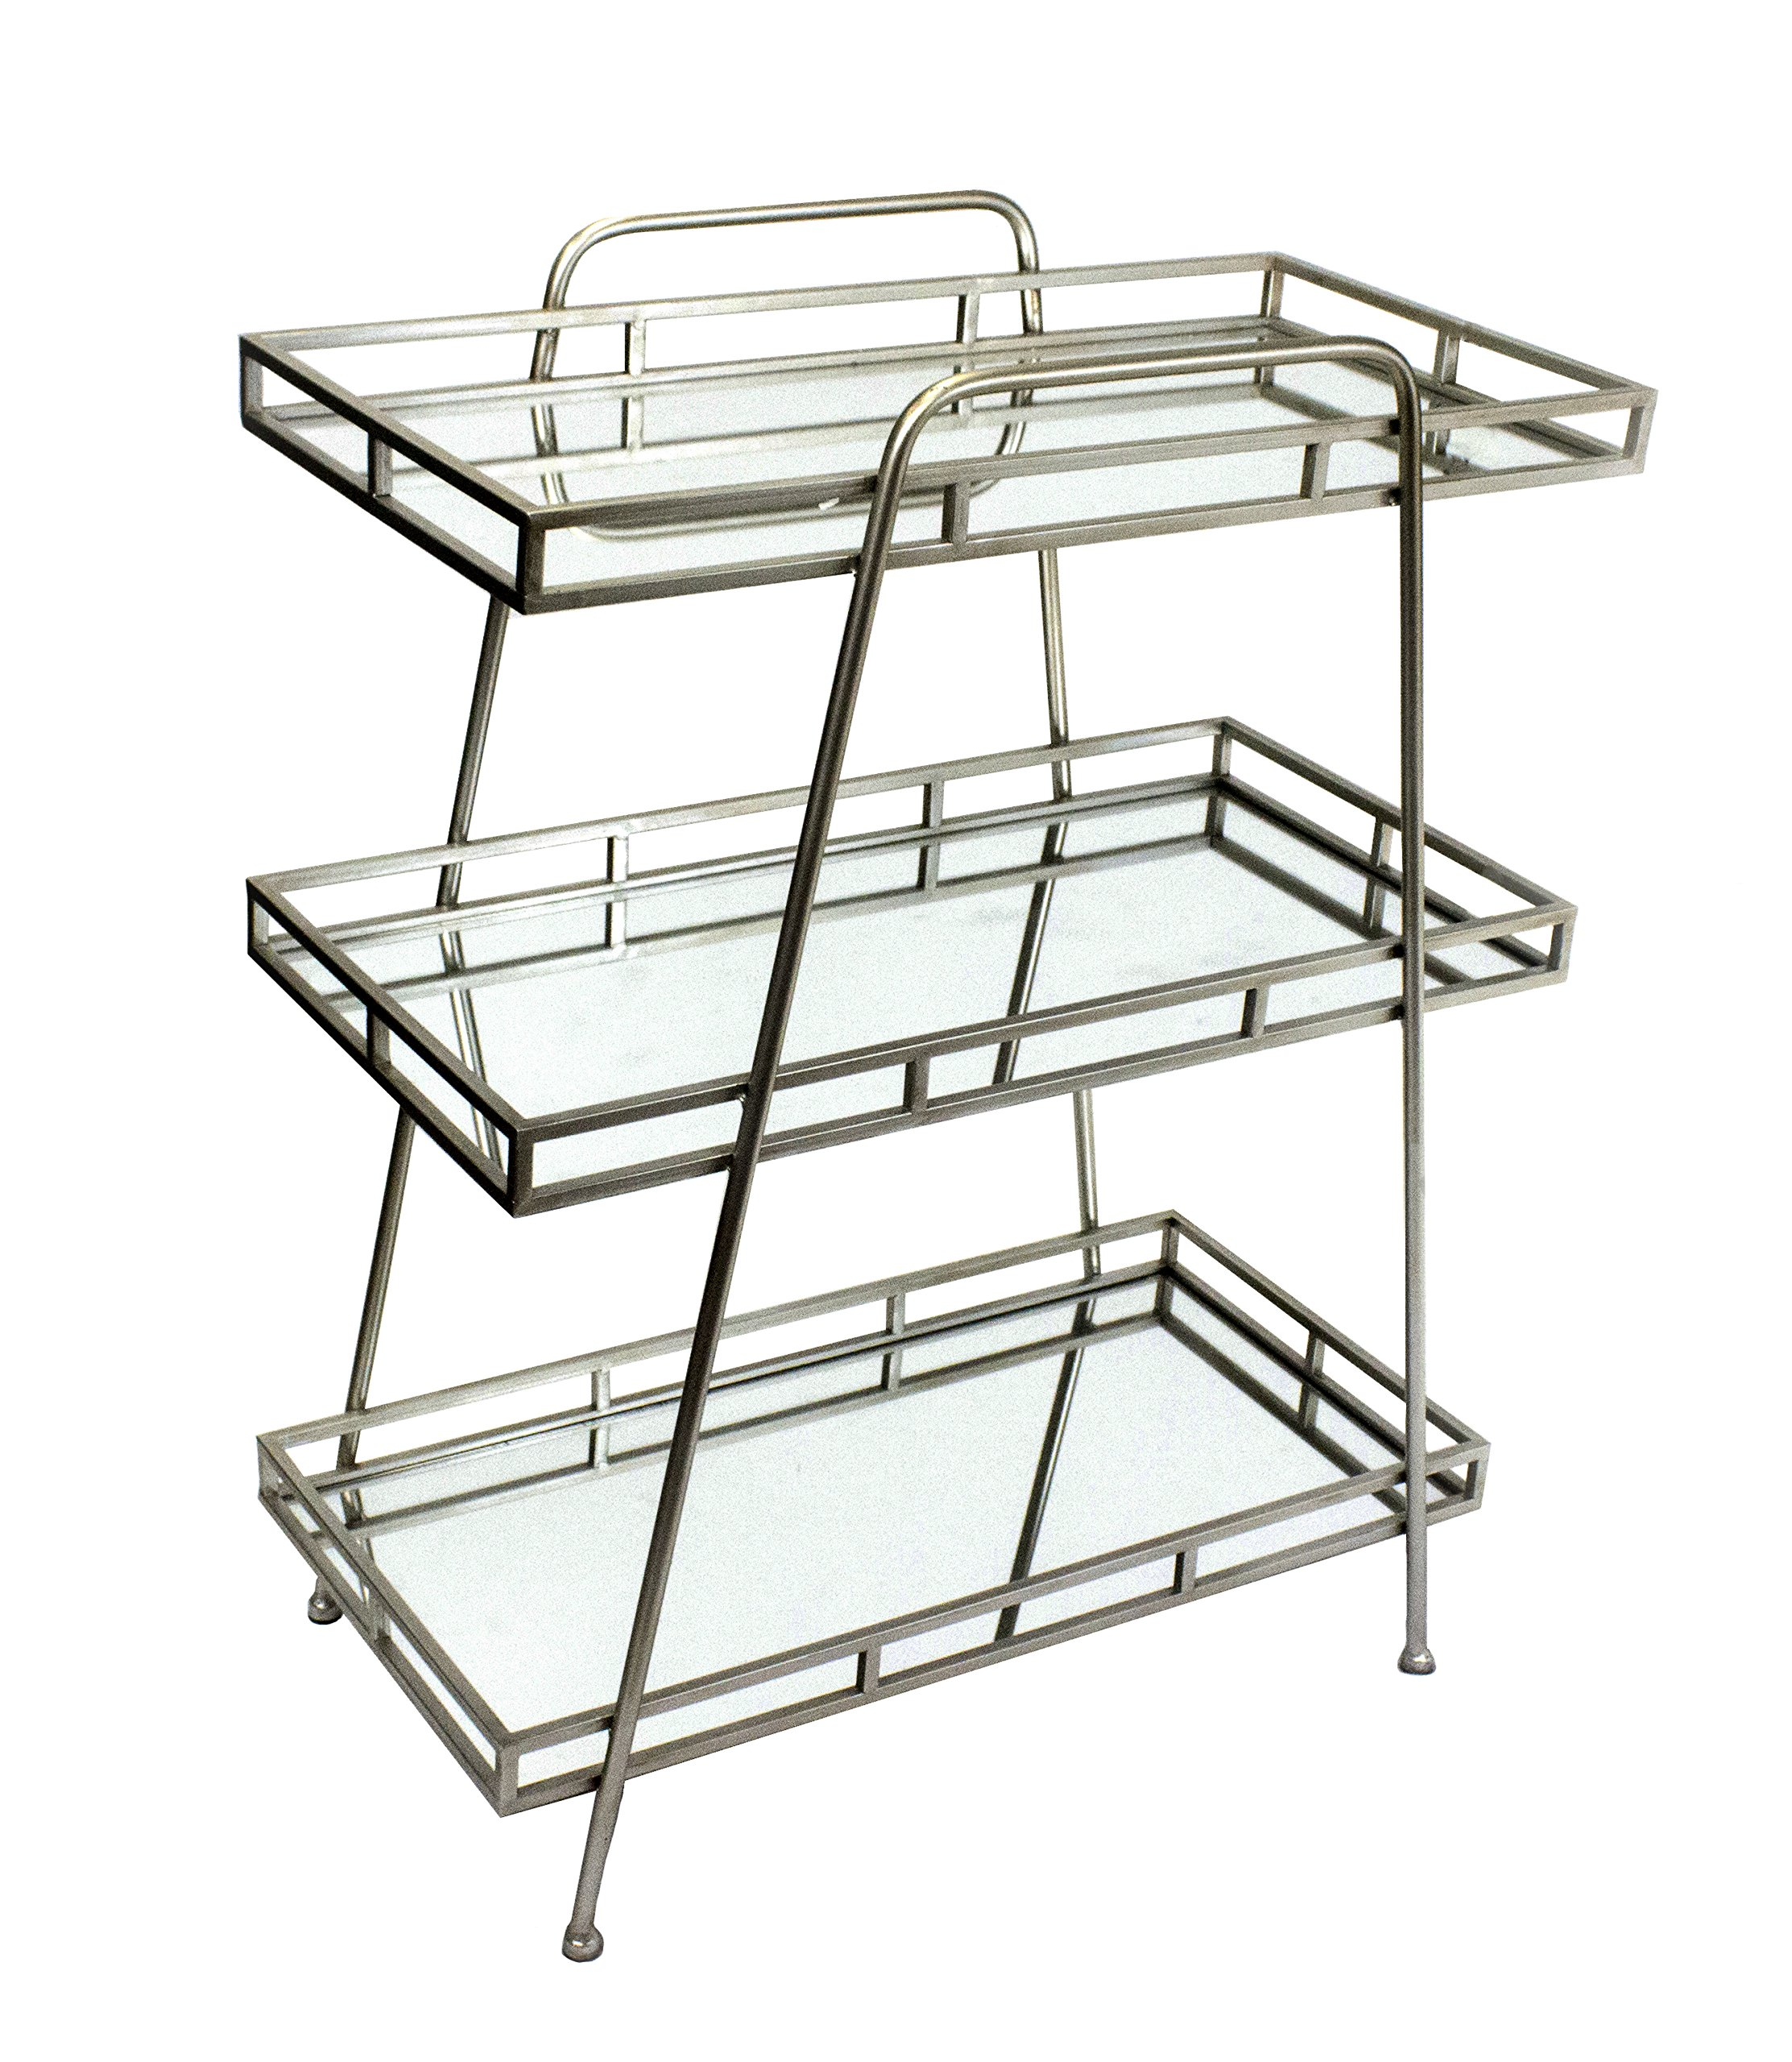 Sagebrook Home 11569 3 Tiered Metal & Glass Tray Stand, 28'' x 15'' x 36'', Multicolored